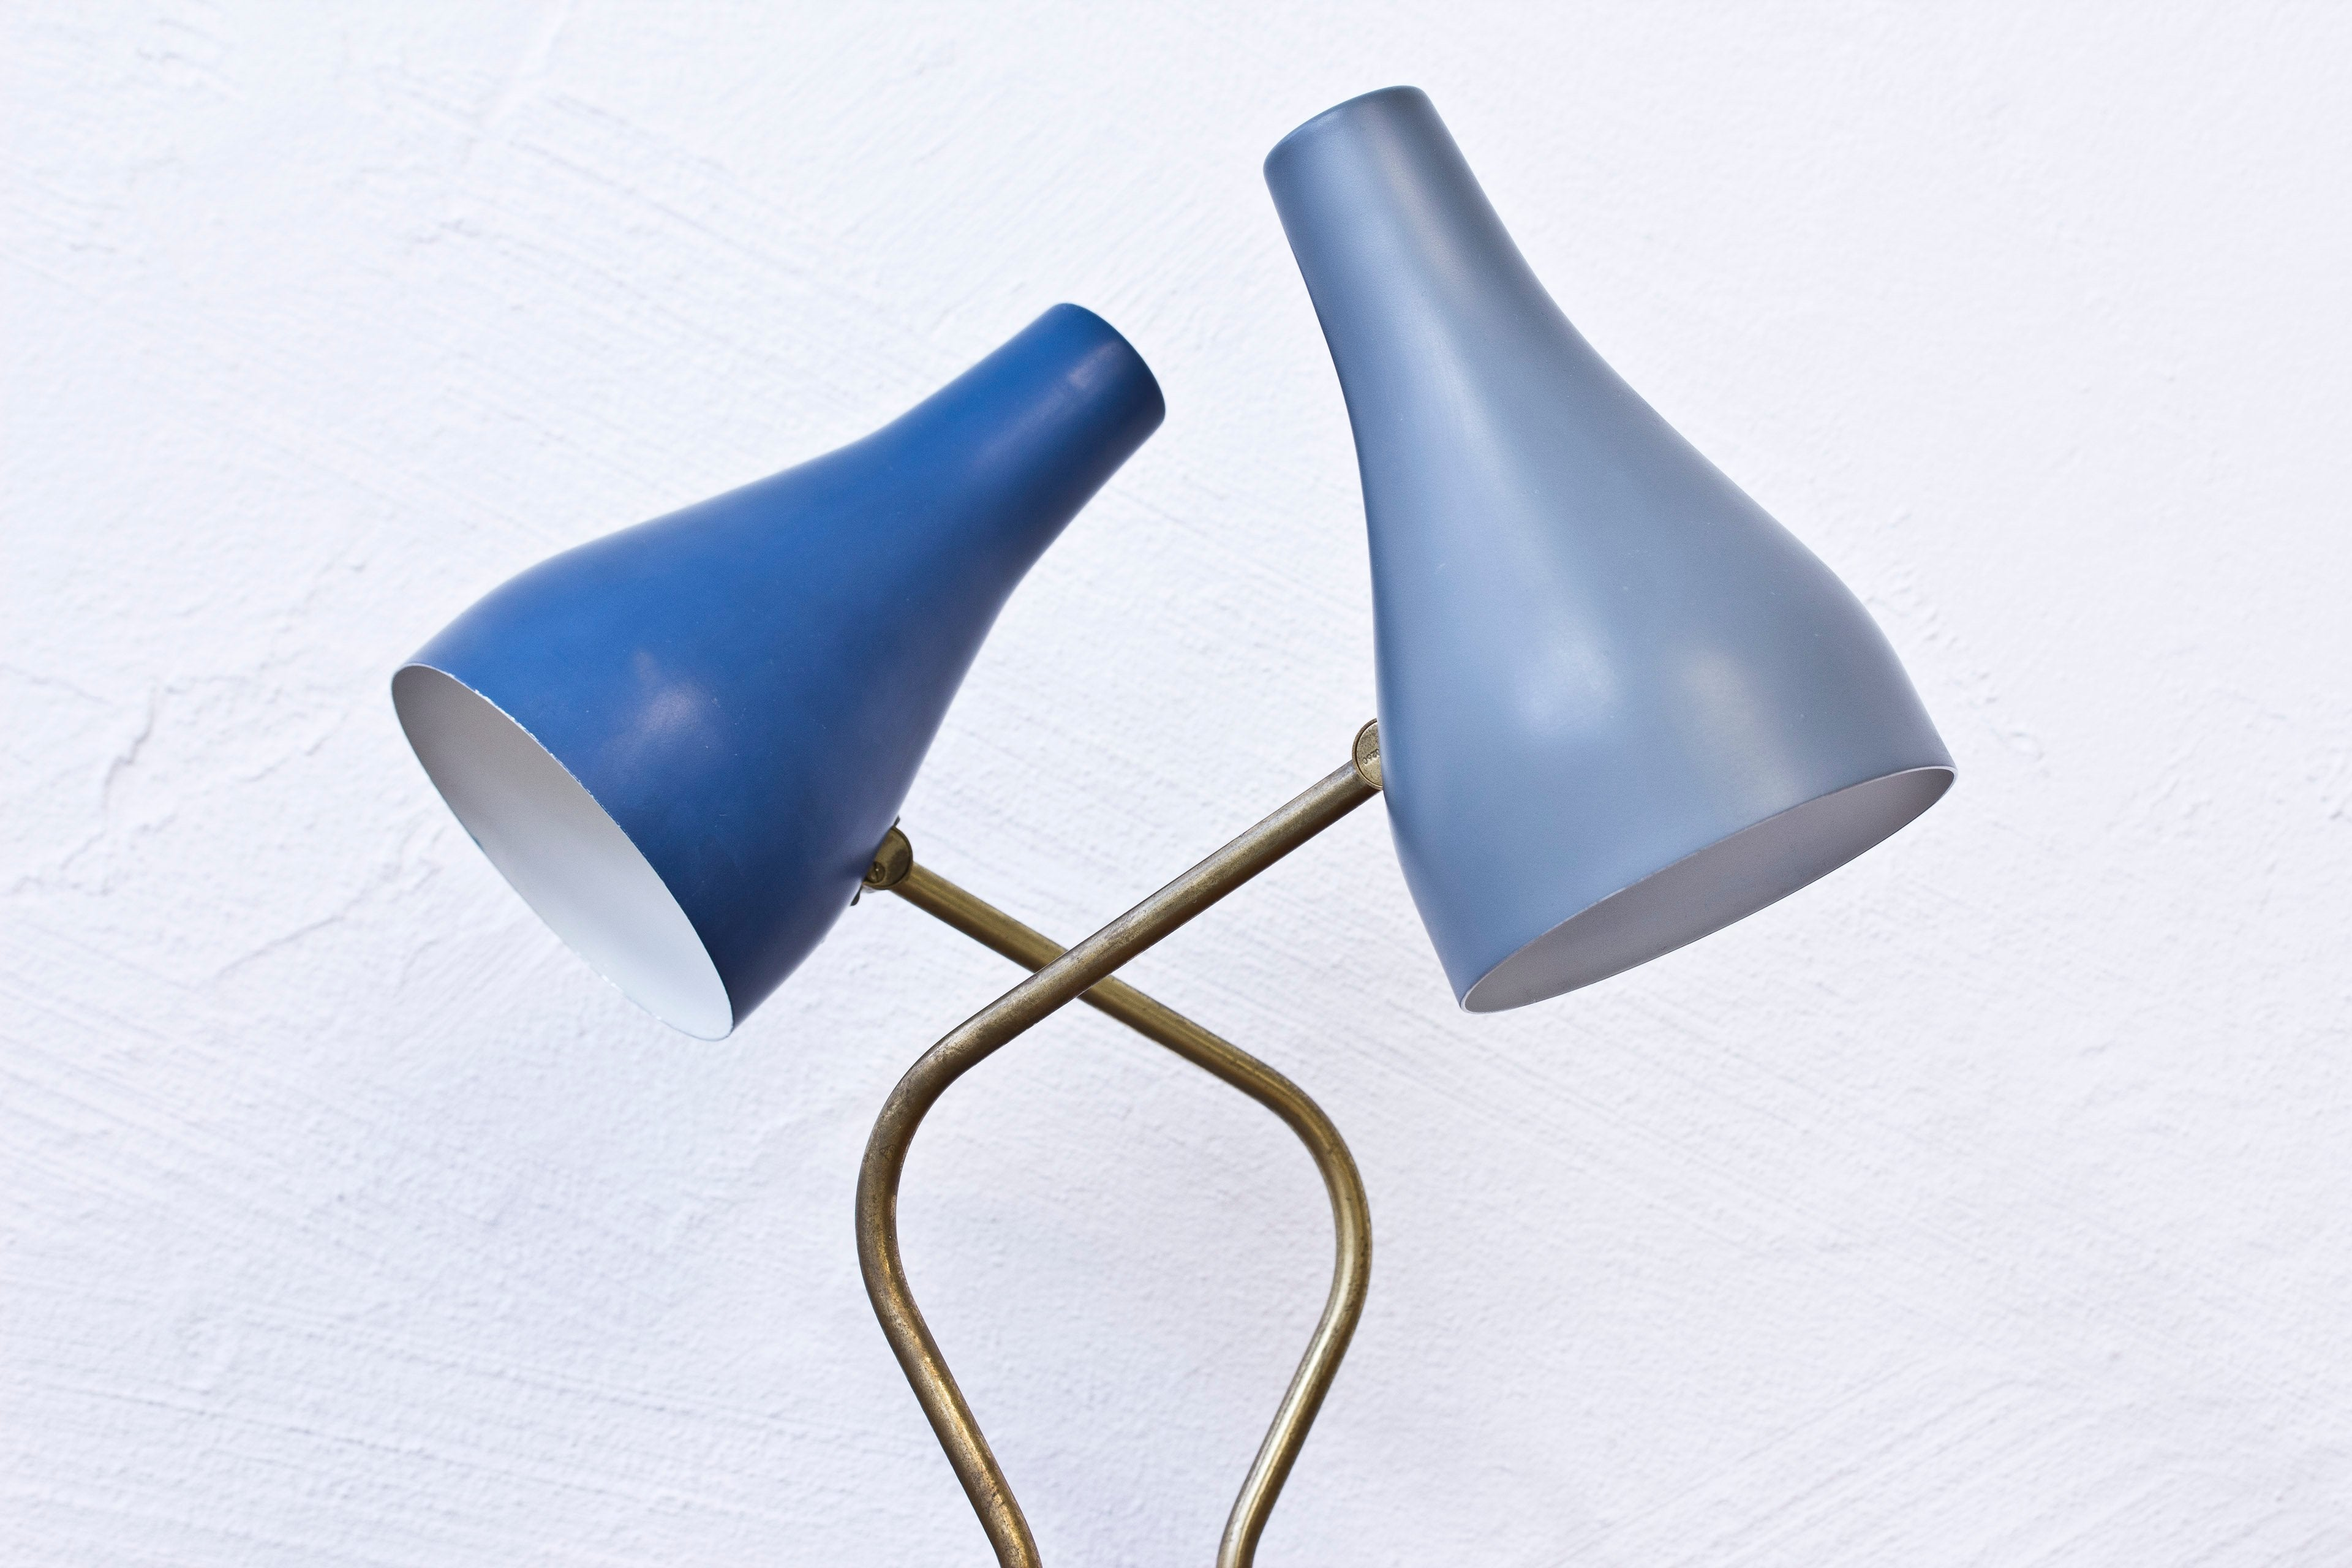 Swedish 1950s table lamps by ASEA